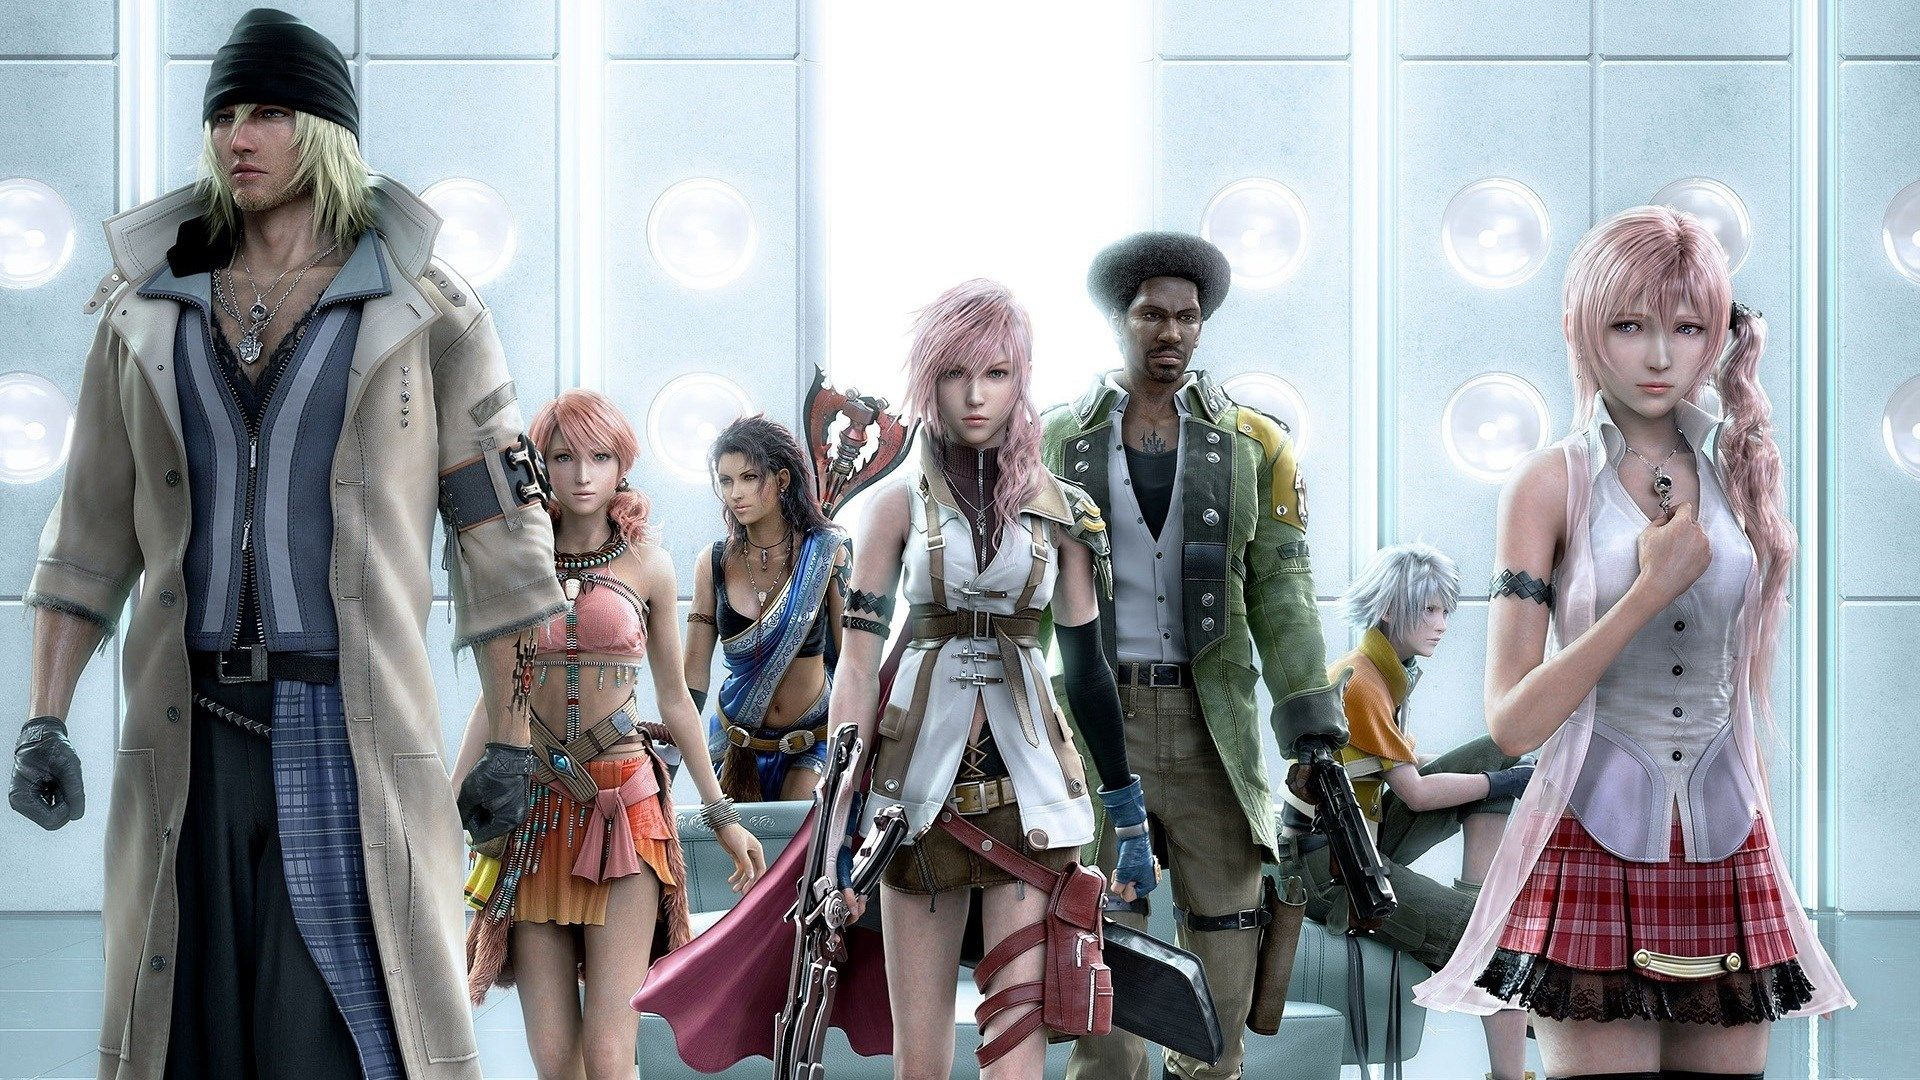 1920x1080 Free Screensaver Wallpapers For Final Fantasy Xiii Personajes De Final Fantasy Final Fantasy Videojuegos